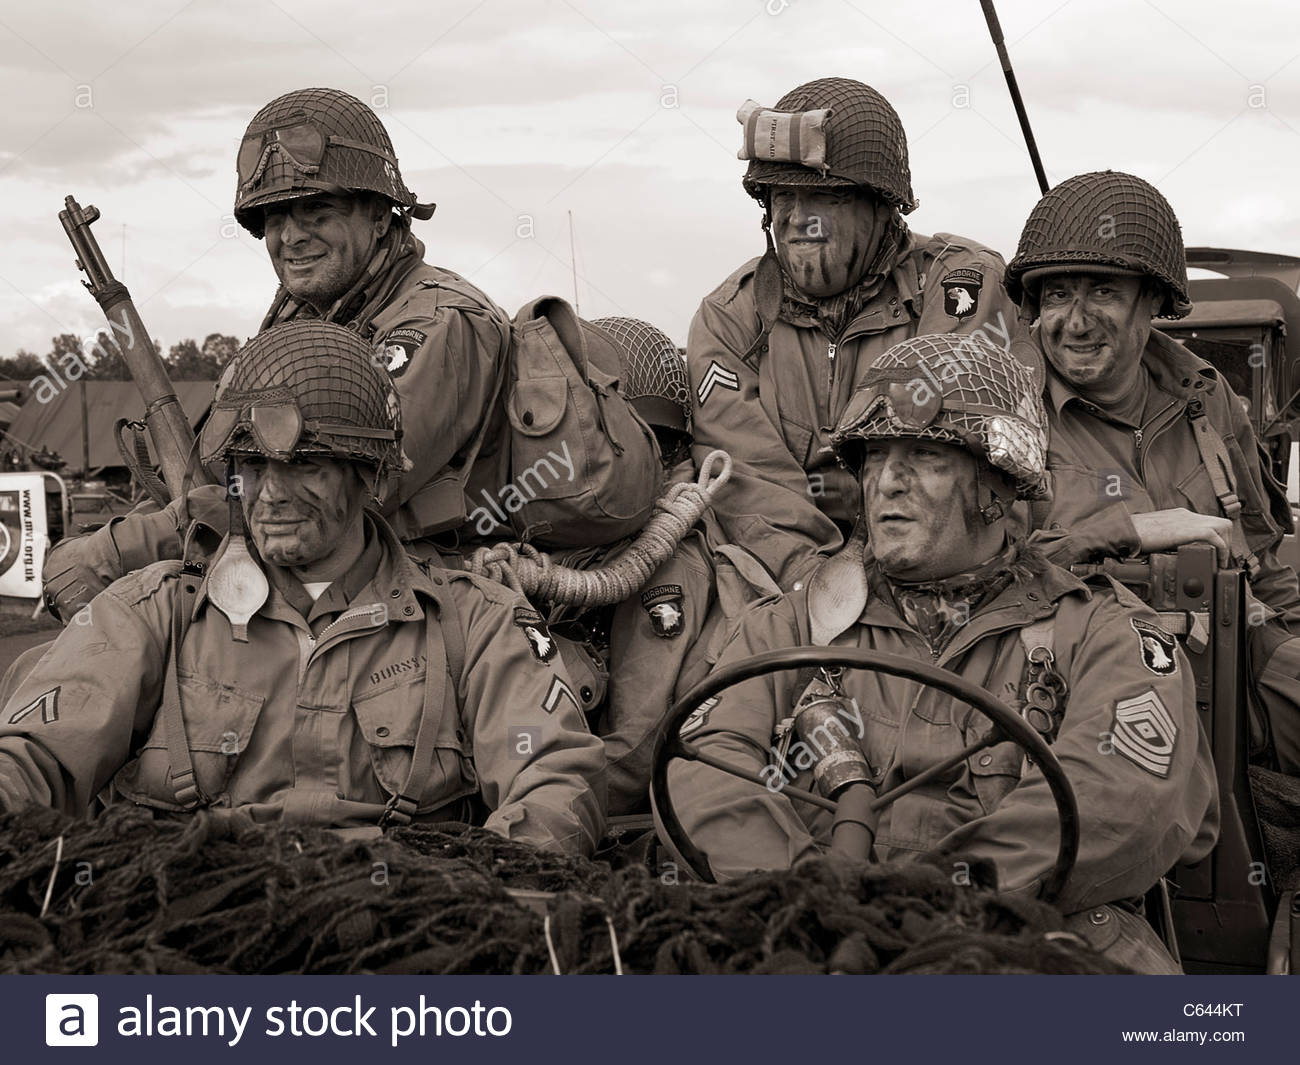 A group of men dressed in American soldier uniforms and taking part in a world war II reenactment weekend. - Stock Photo